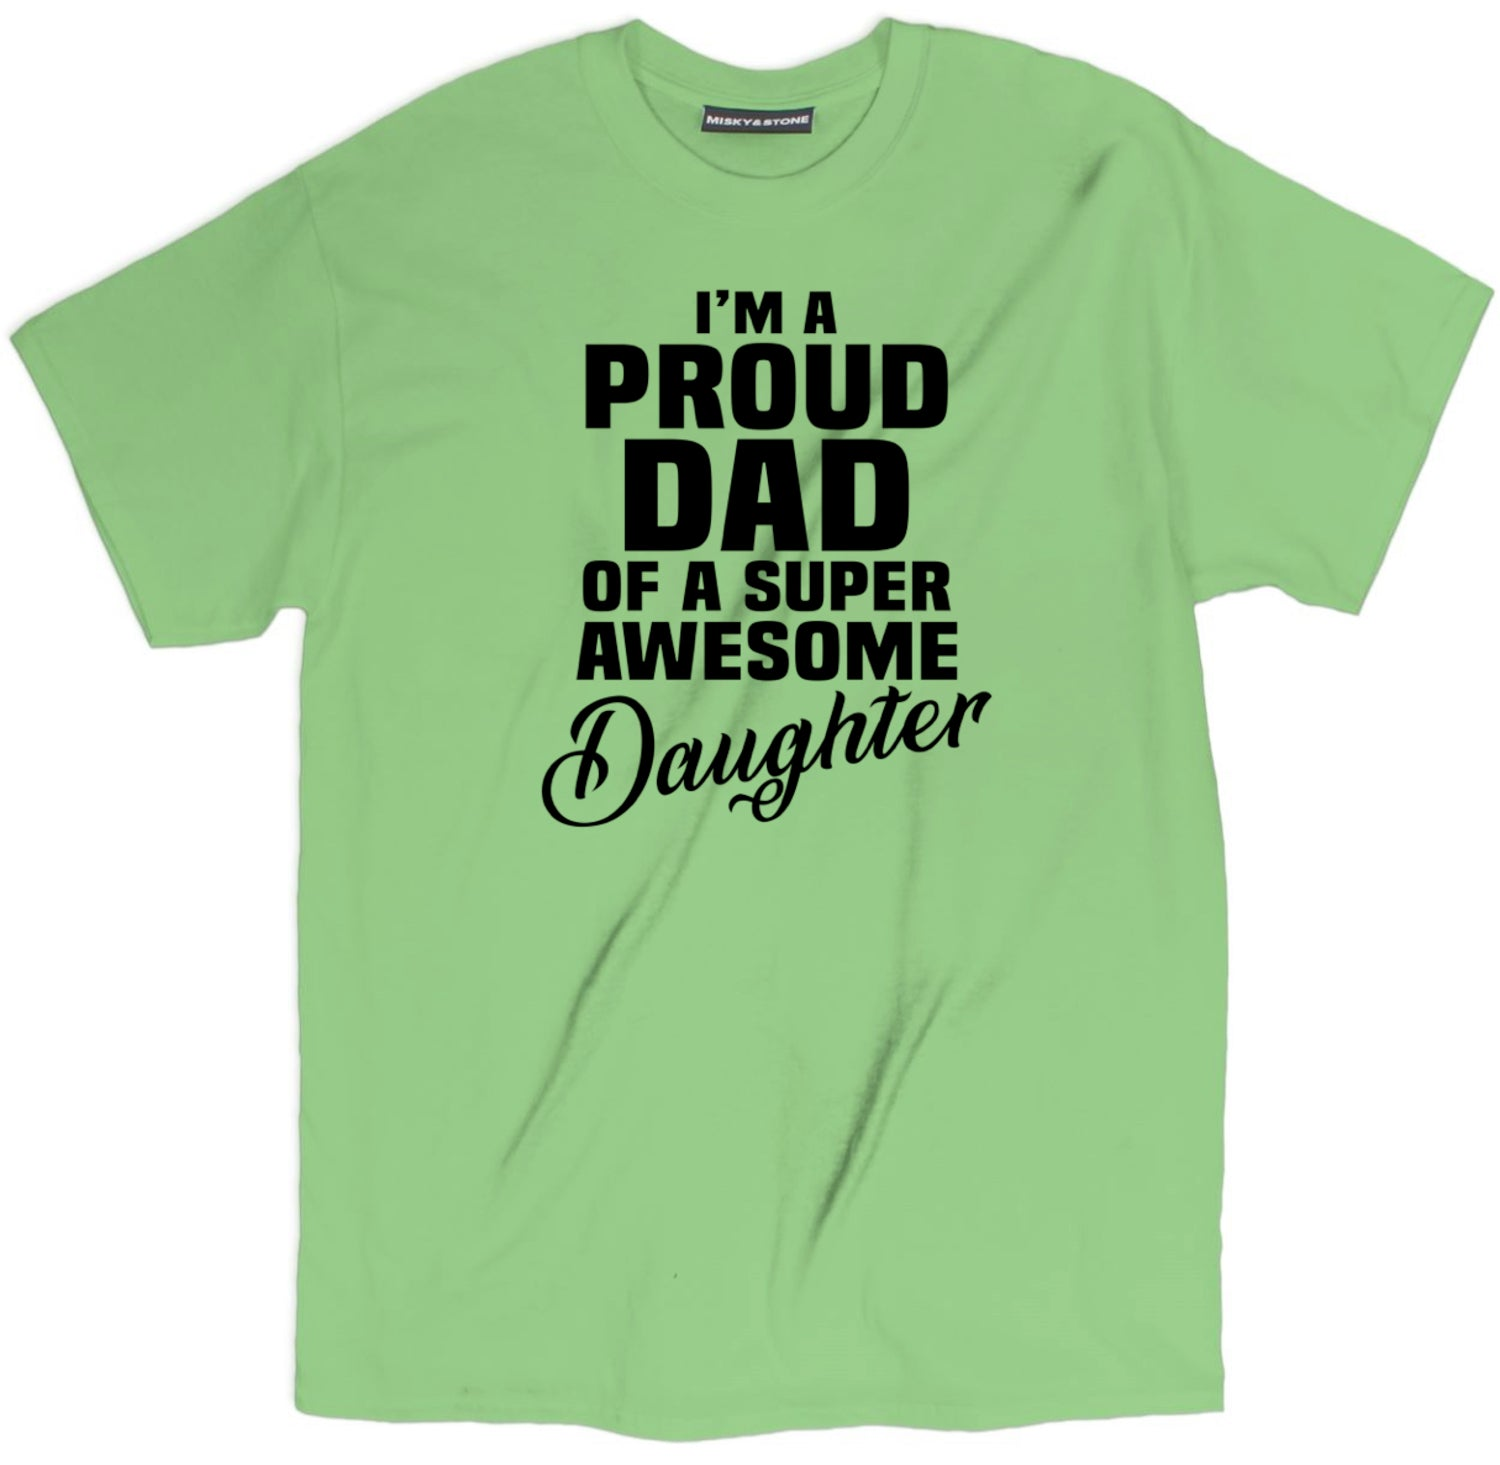 proud dad t shirt, fathers day shirts, father's day t shirts, dad shirts, father's day shirt, funny dad shirts, fathers day tee shirts, funny fathers day shirts, best dad t shirt, best dad shirts,